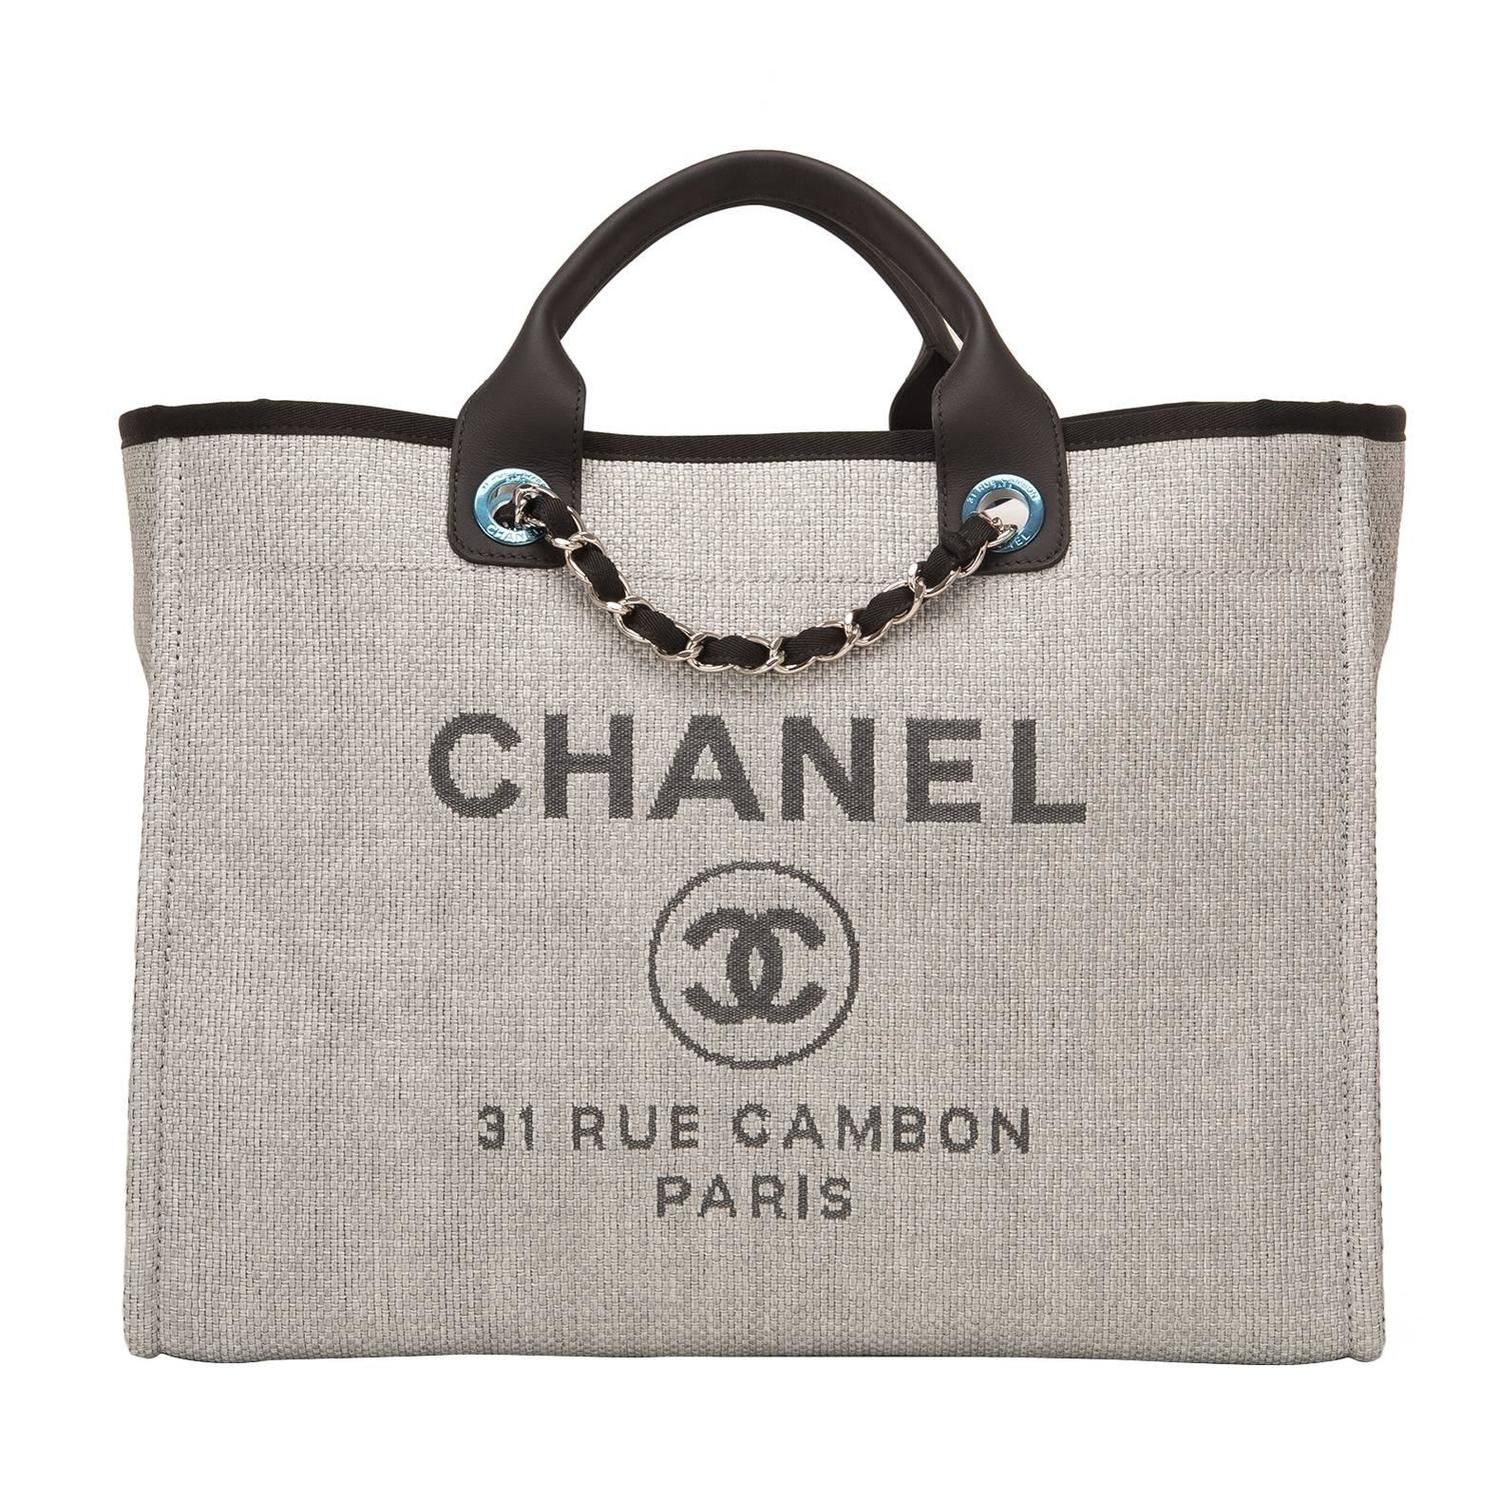 9f898613872d Chanel Grey Canvas Large Deauville Shopping Bag | From a collection of rare  vintage tote bags